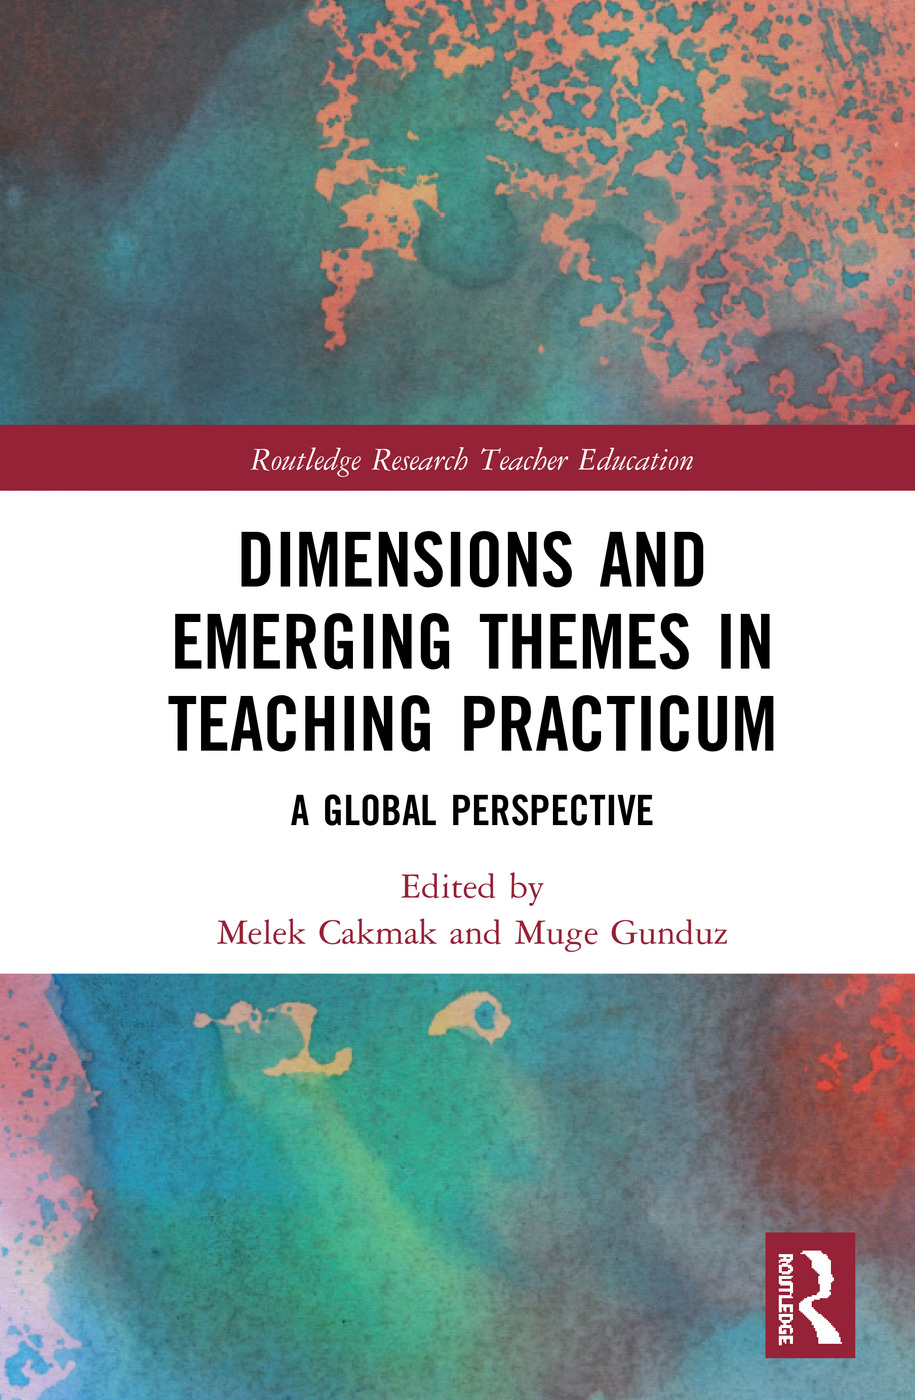 Dimensions and Emerging Themes in Teaching Practicum: A Global Perspective book cover